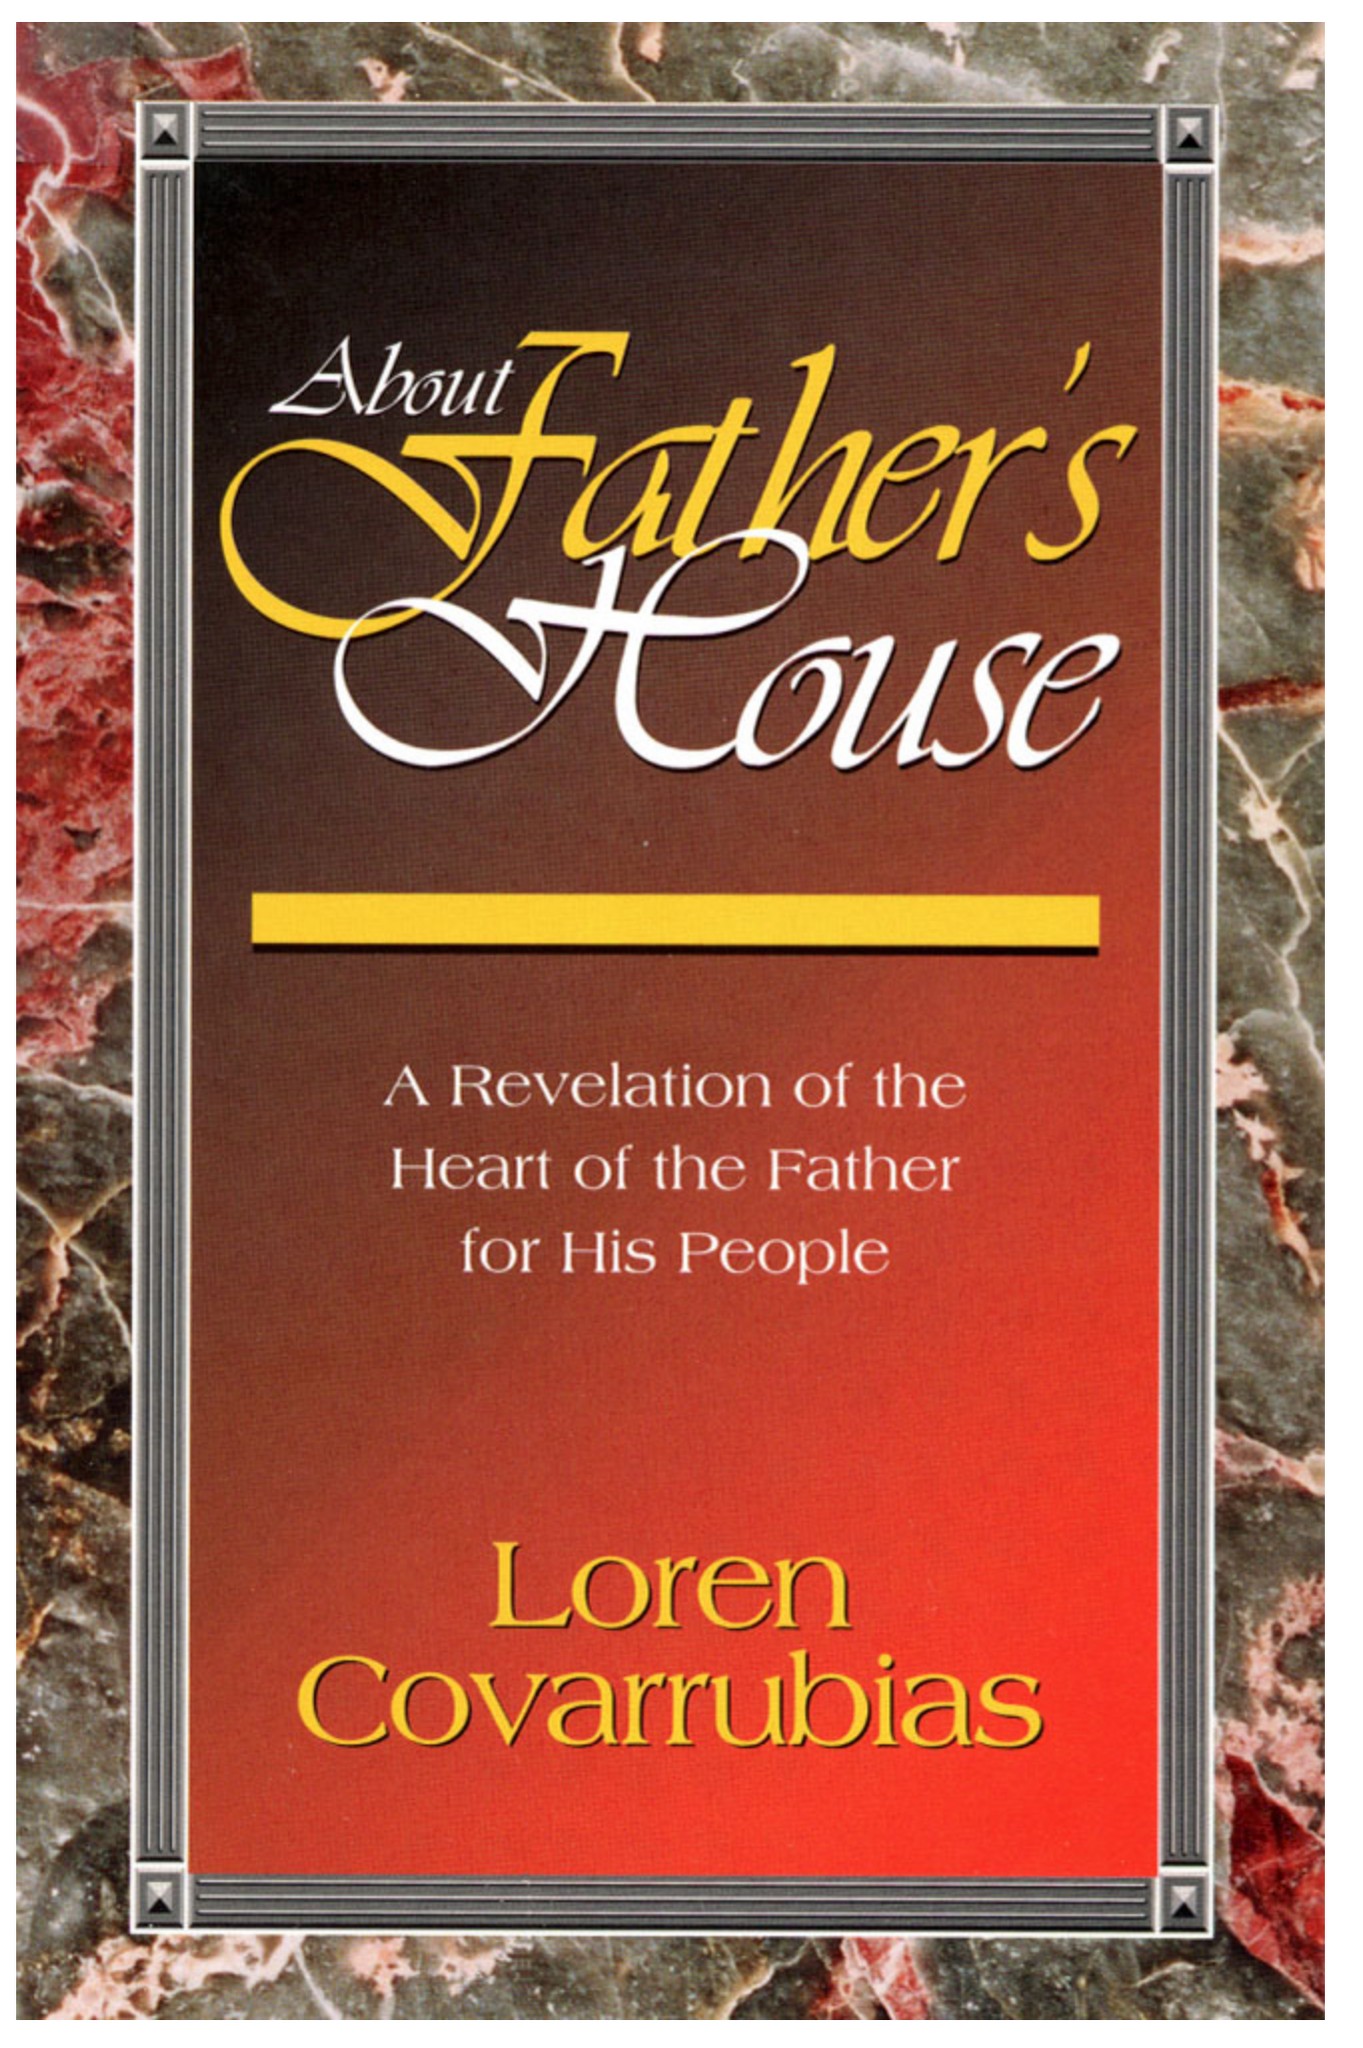 About Father's House Book